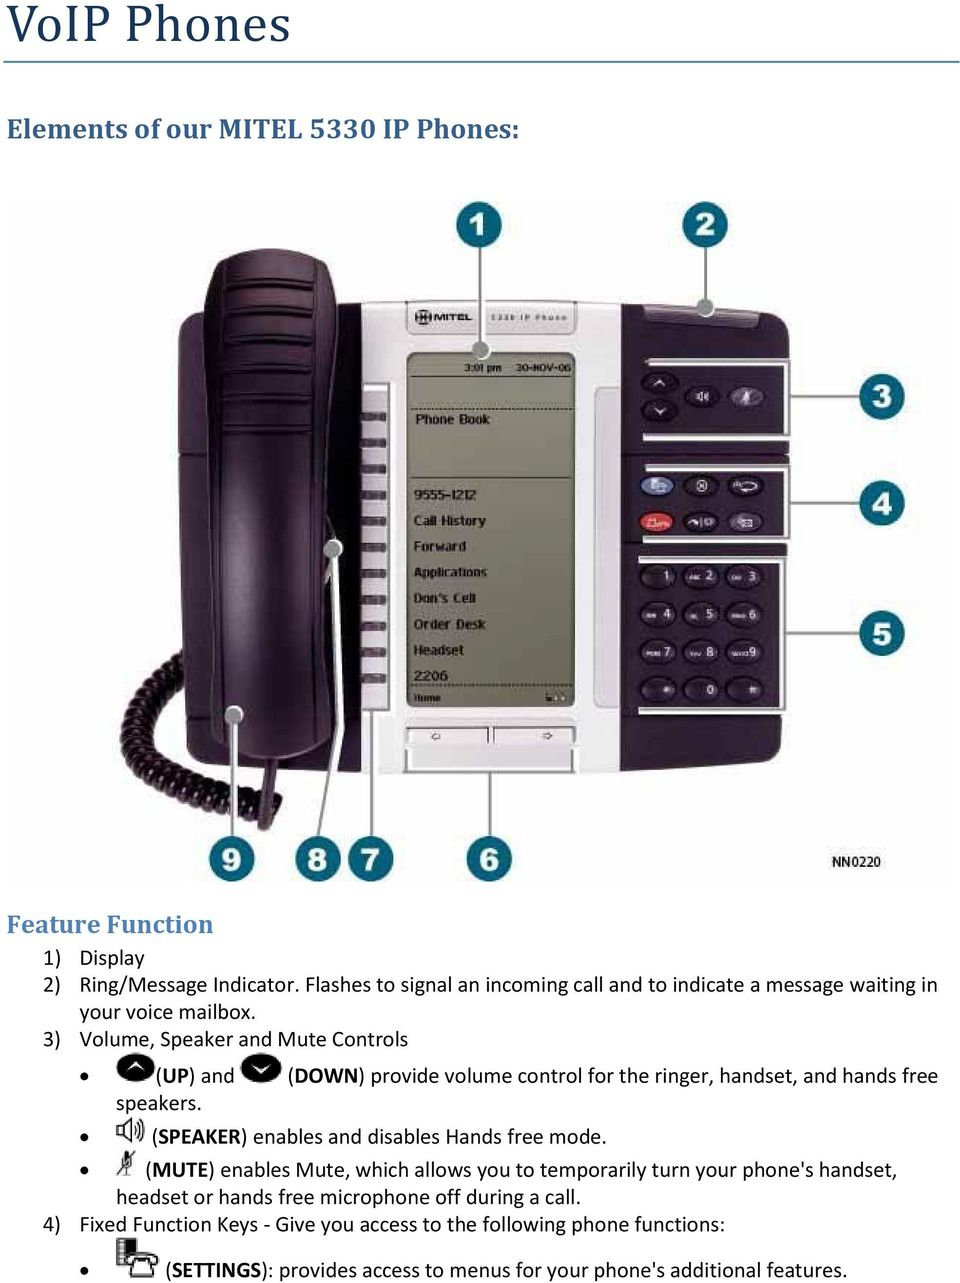 3) Volume, Speaker and Mute Controls (UP) and (DOWN) provide volume control for the ringer, handset, and hands free speakers.